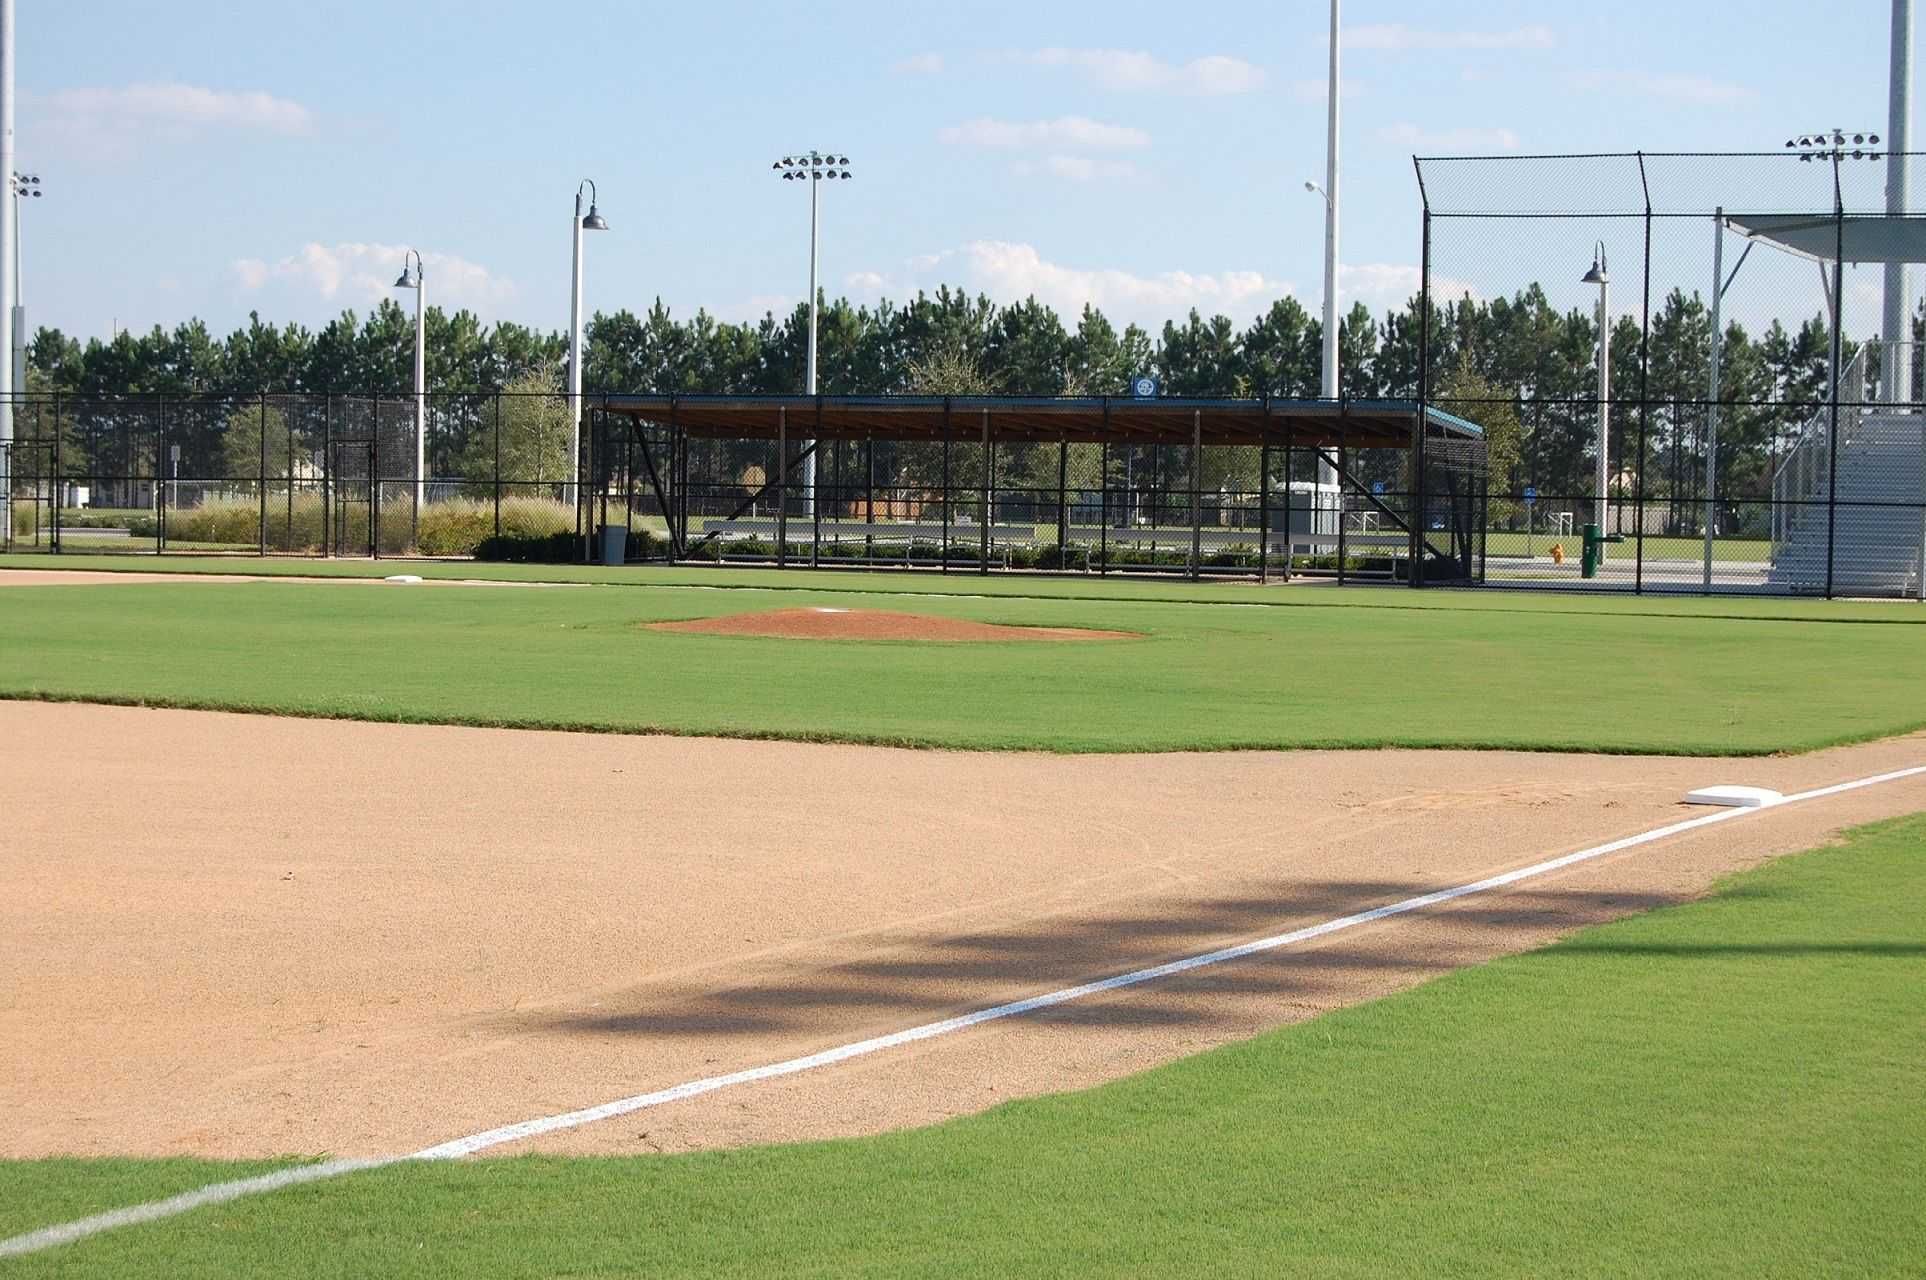 Lake Myrtle Sports Park Auburndale Florida There Are A Total Of Five 5 Baseball Fields Including The Main Stadium Field Home To Over 4 Sport Park Lake Park